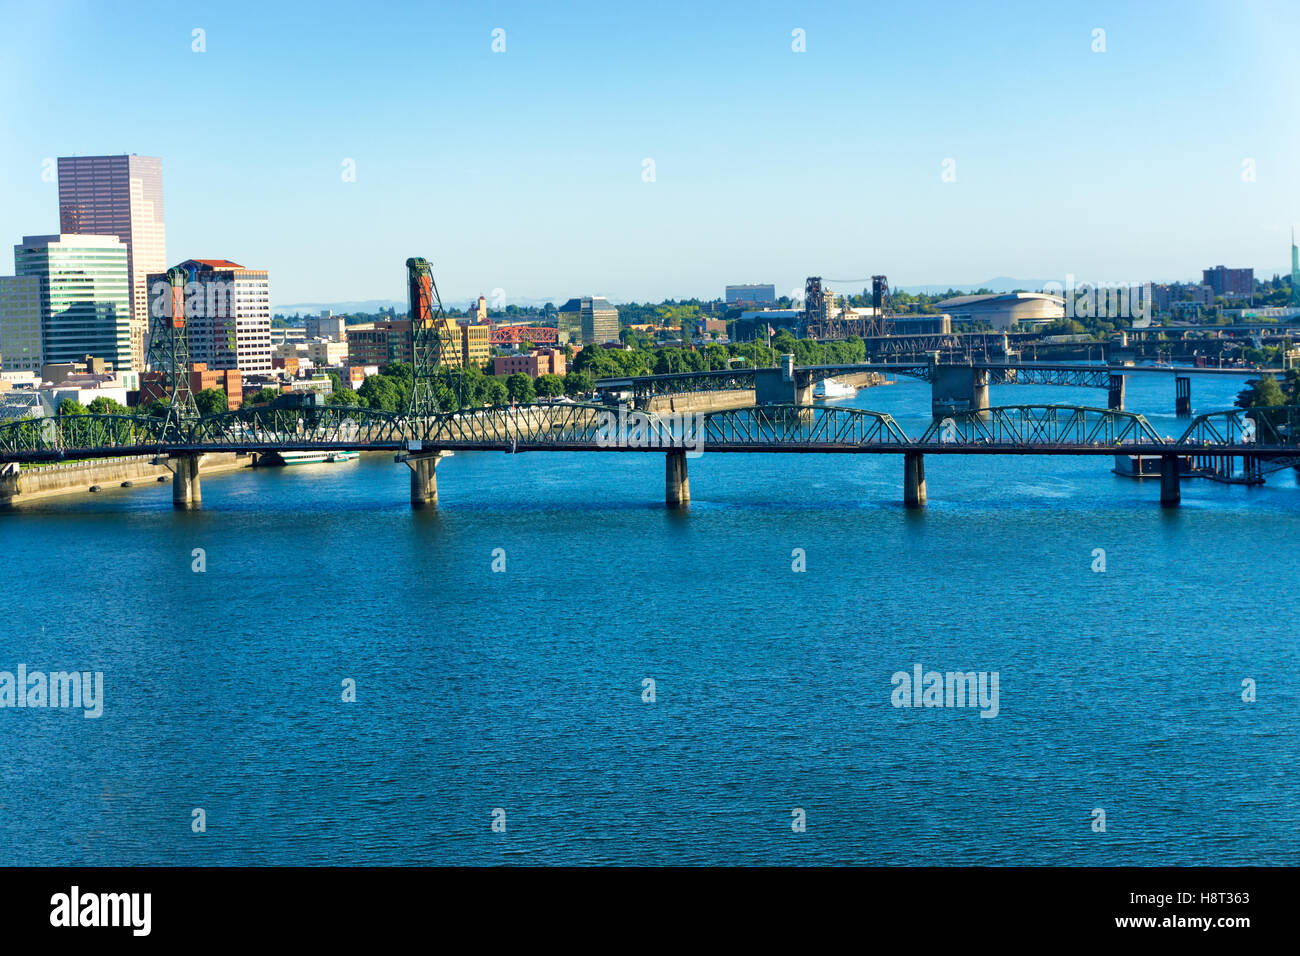 View of bridges and downtown Portland, Oregon - Stock Image